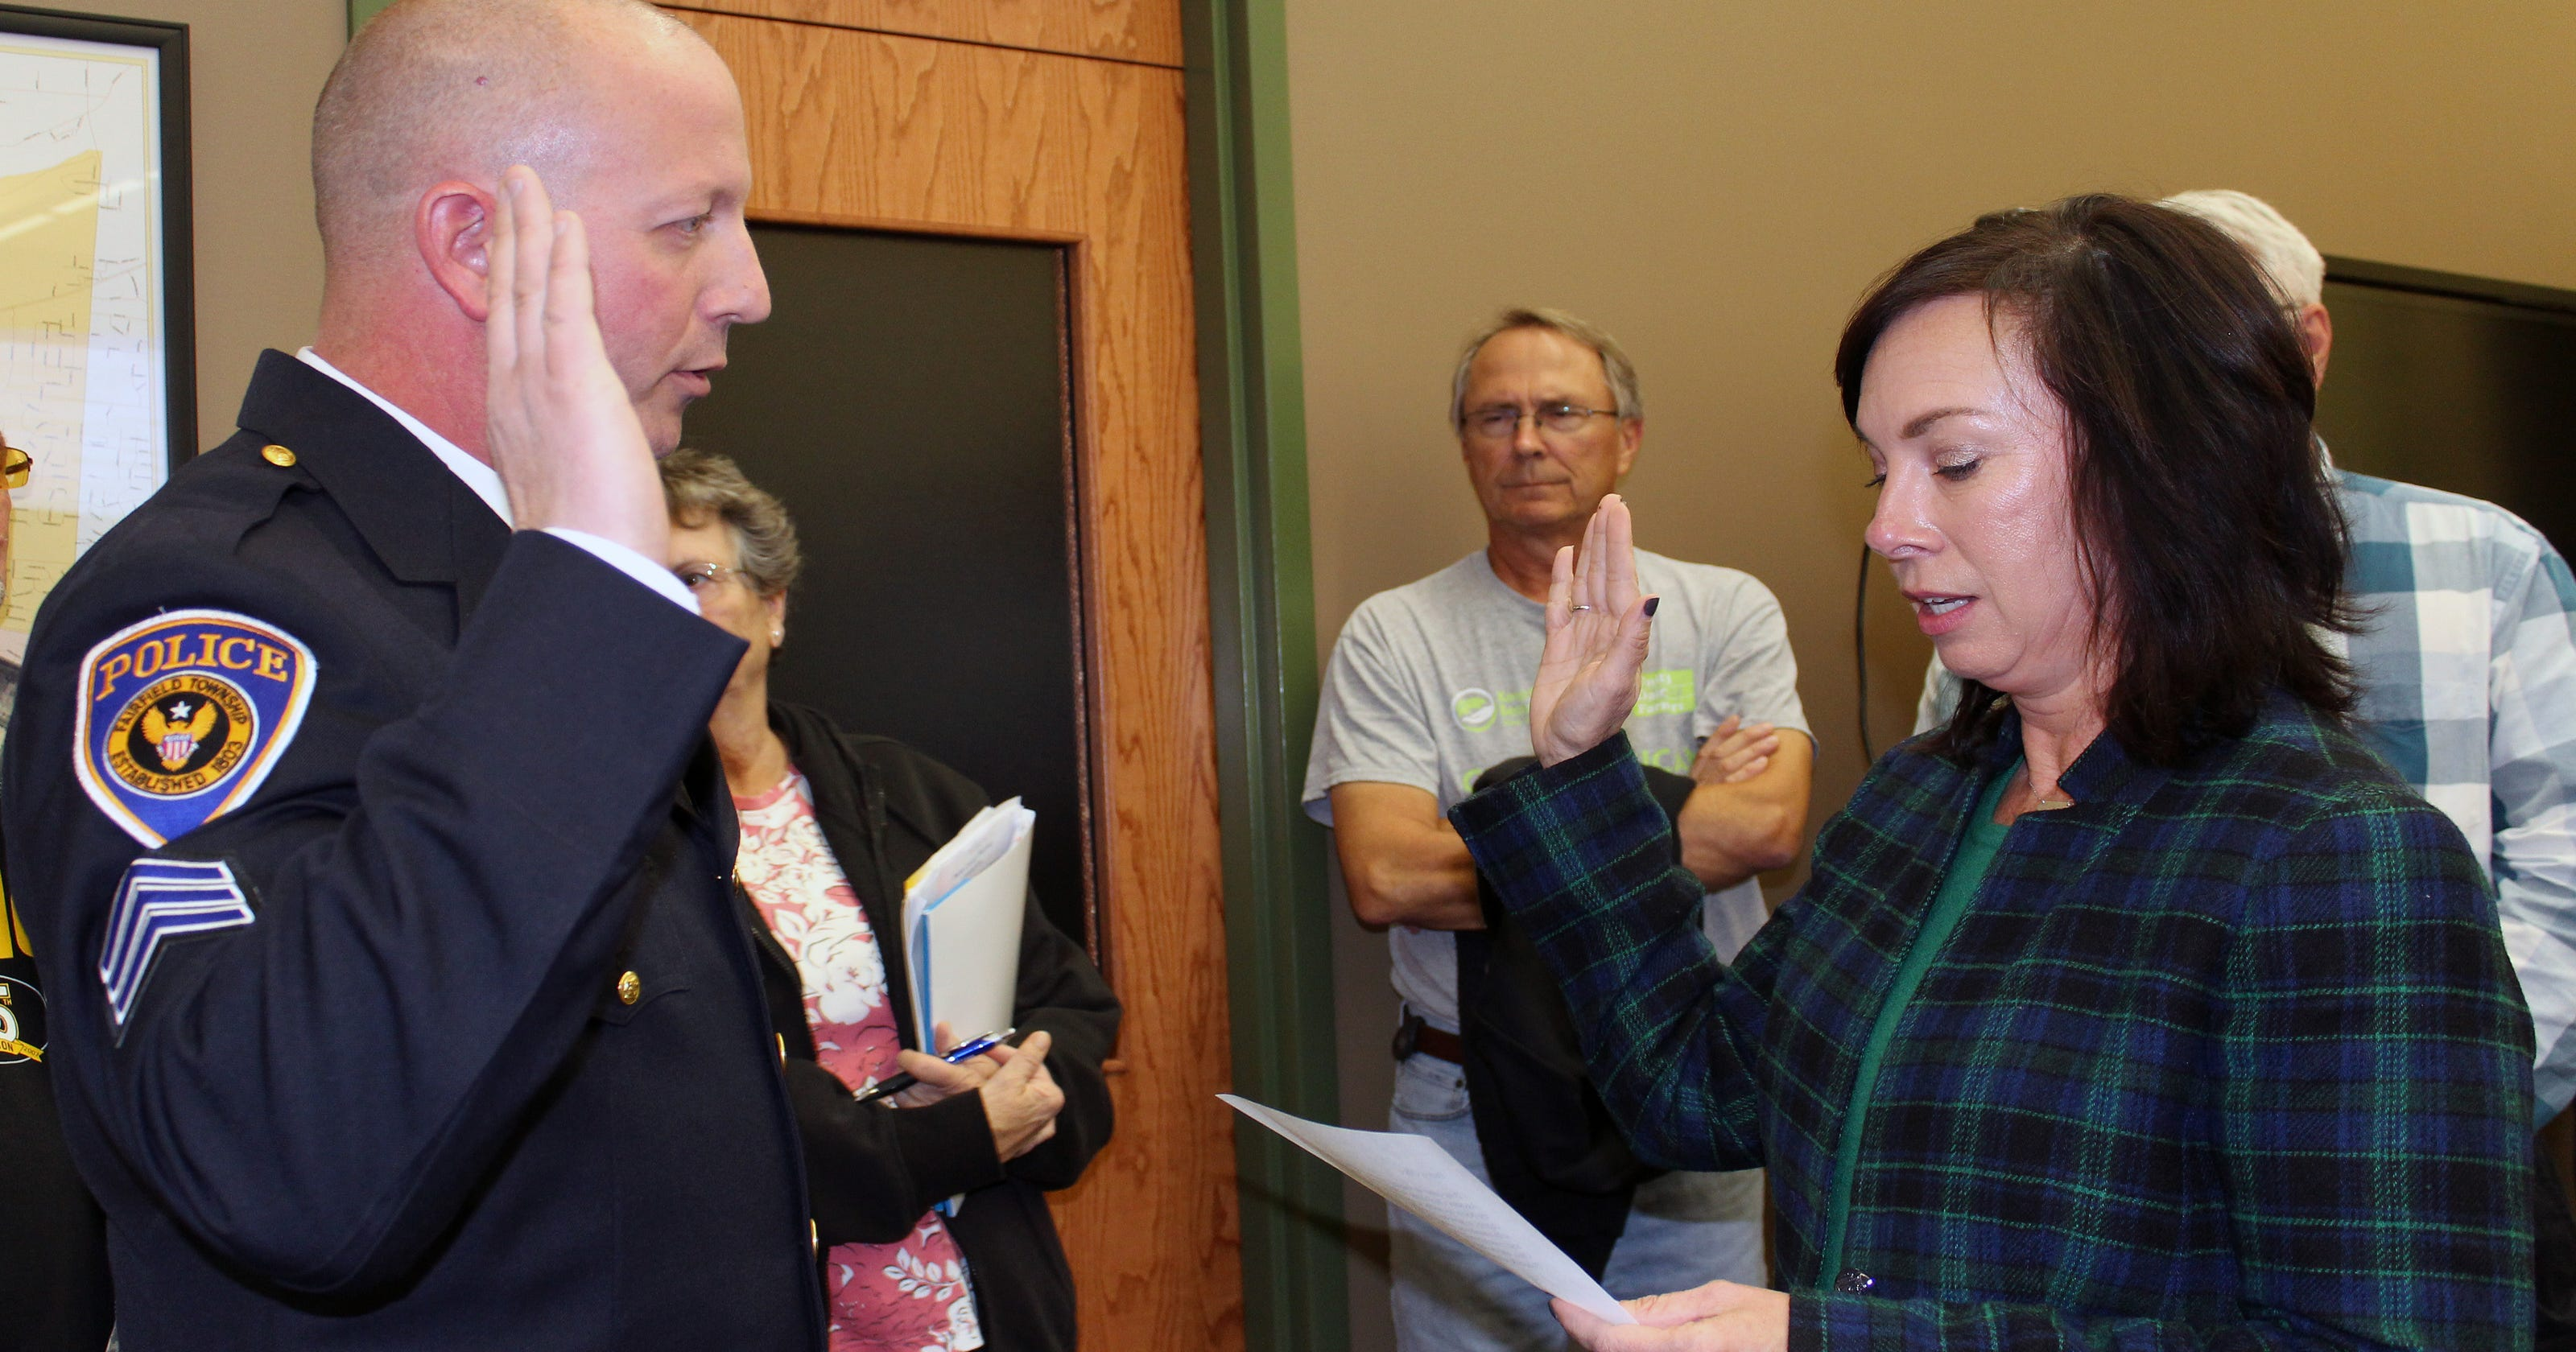 Doug Lanier promoted to Fairfield Township's assistant chief